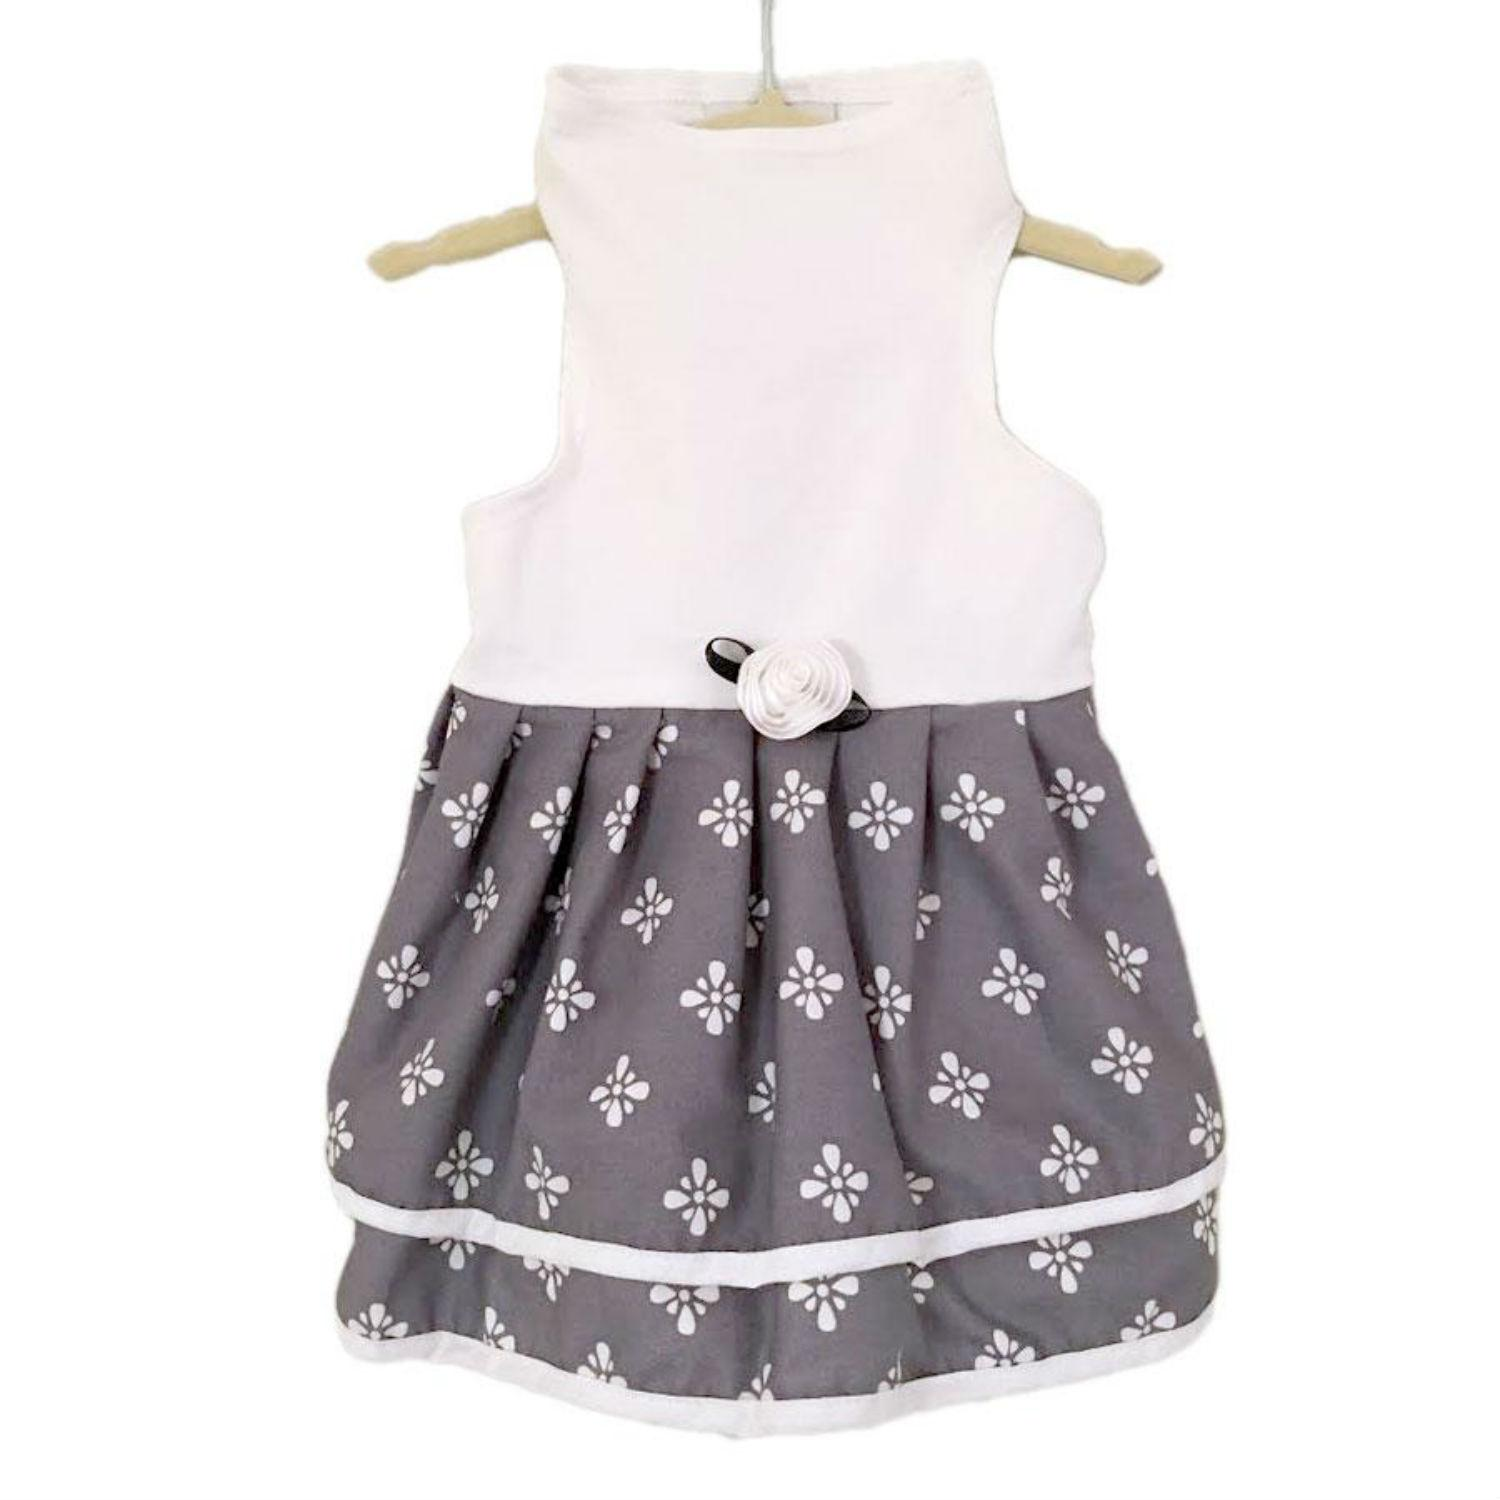 Daisy & Lucy Grey and White Print Dog Dress